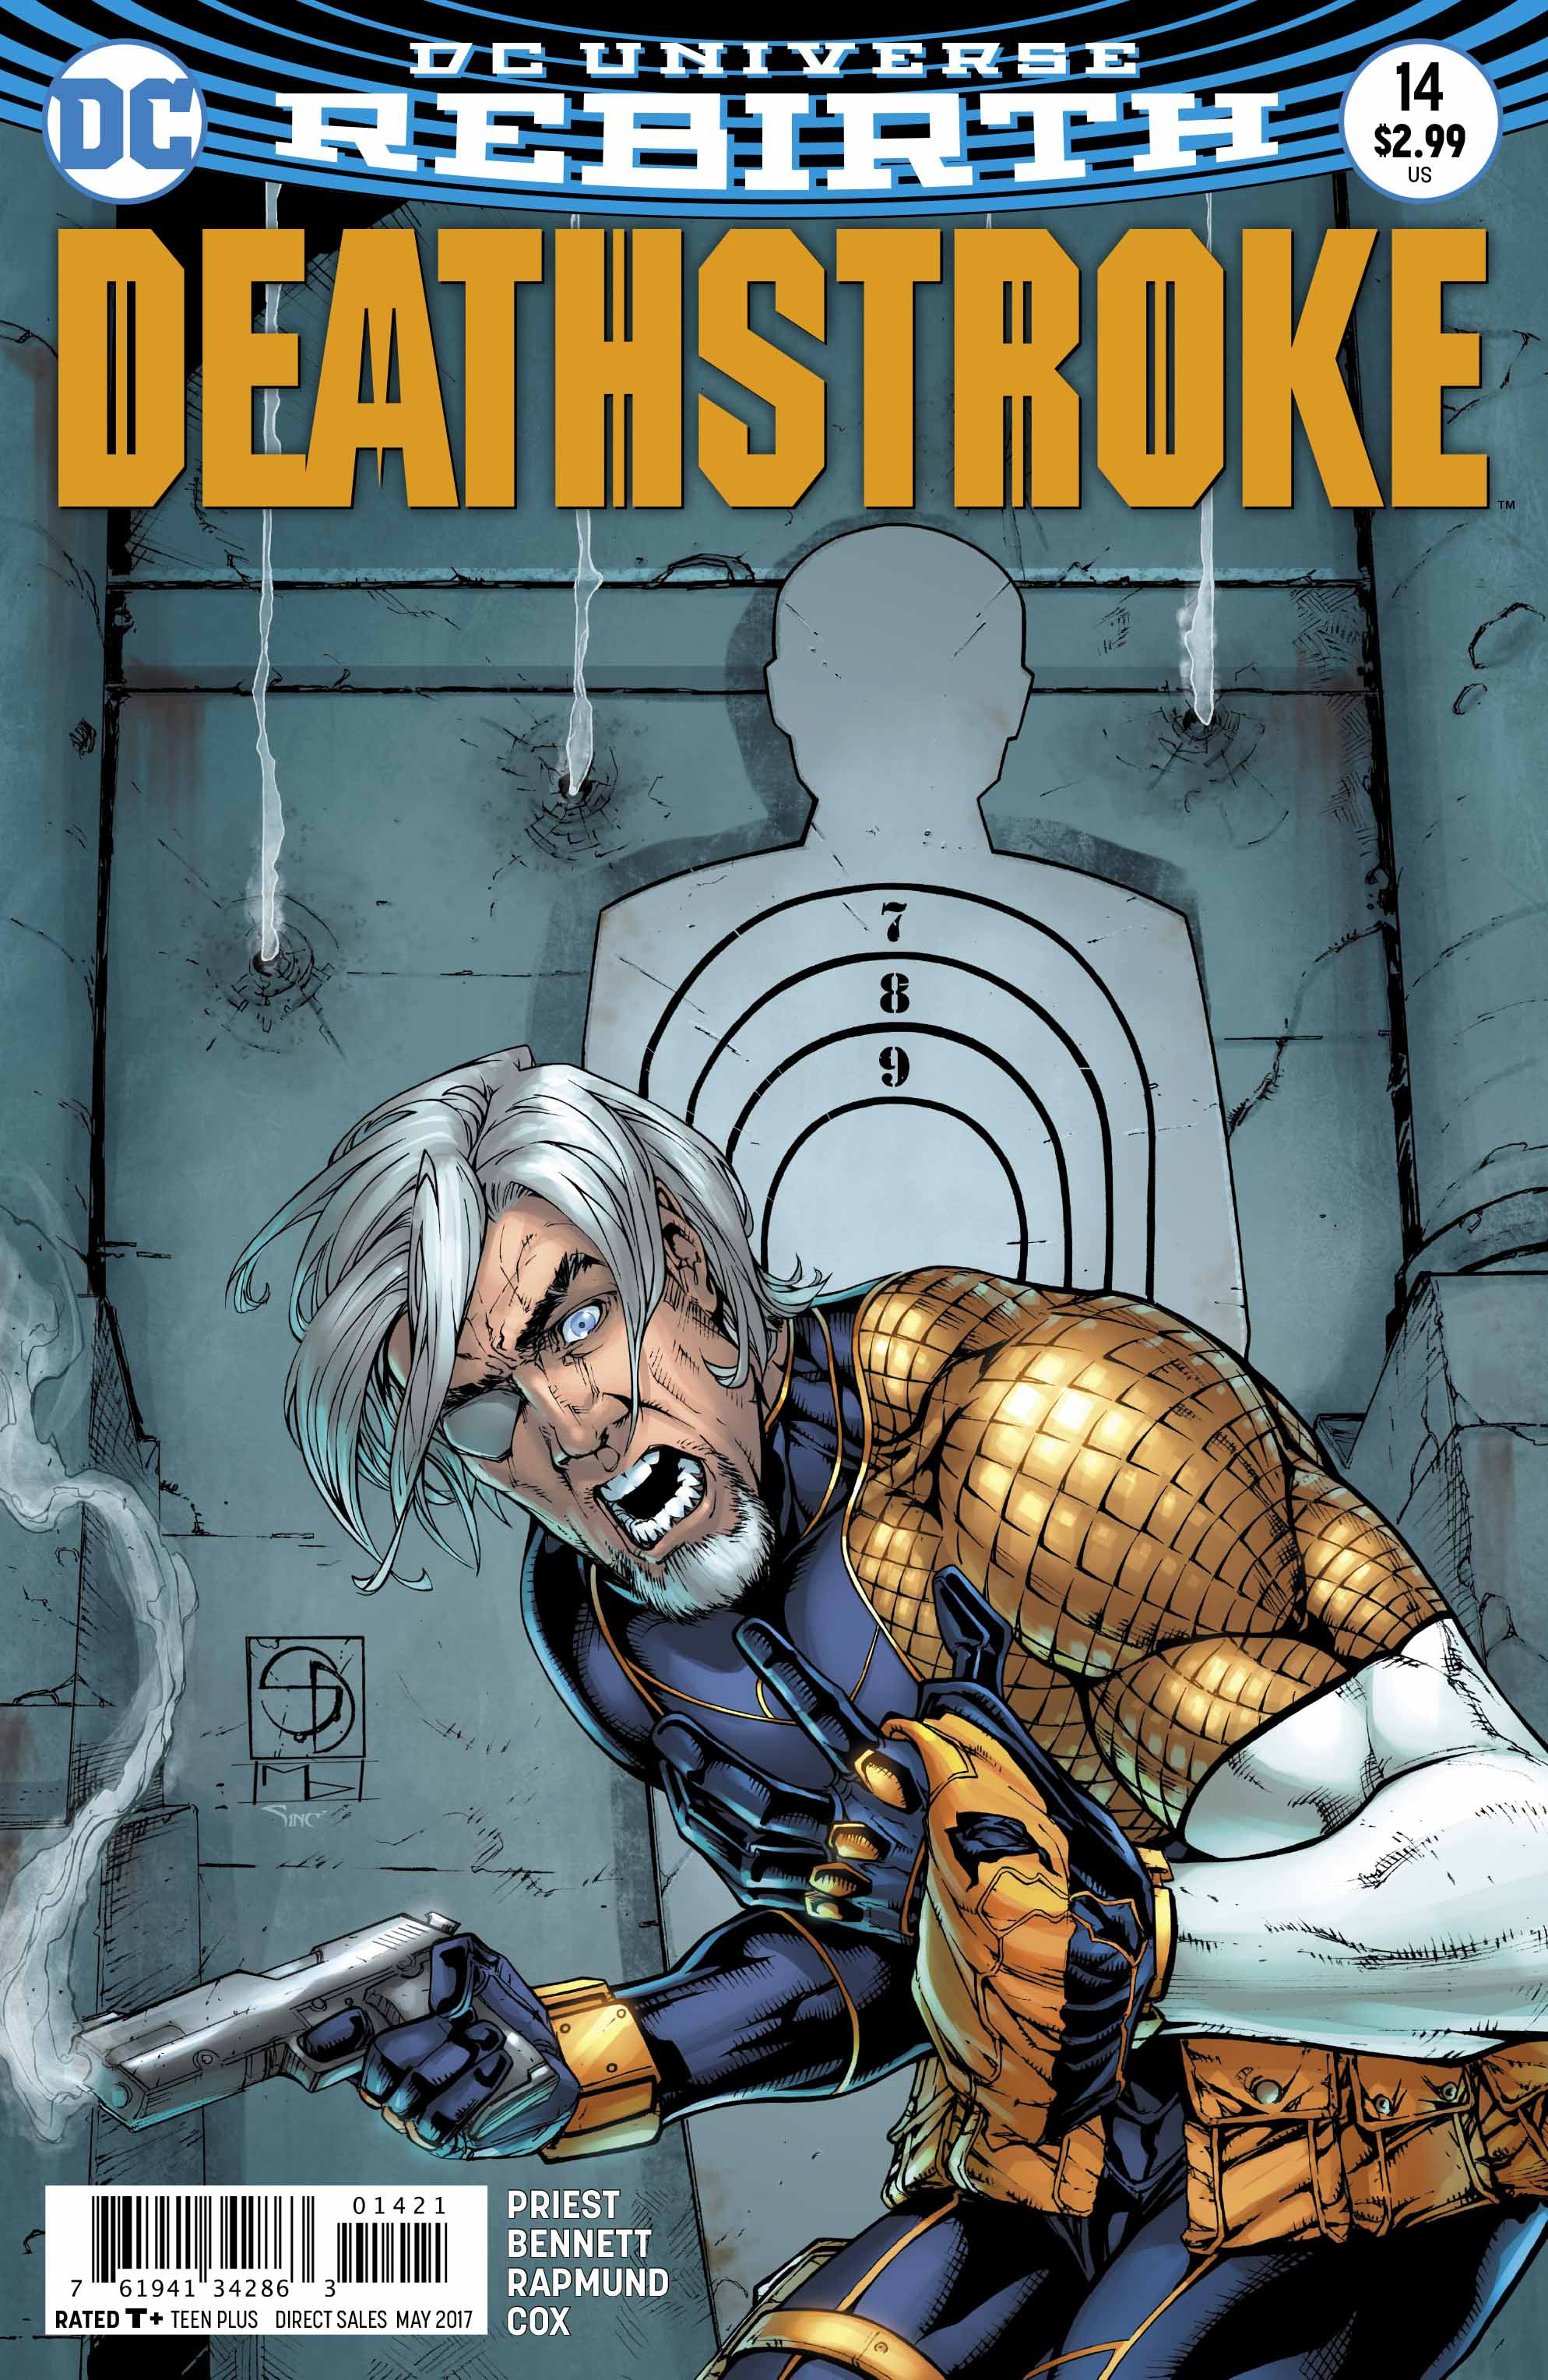 DEATHSTROKE #14 VAR ED | Game Master's Emporium (The New GME)